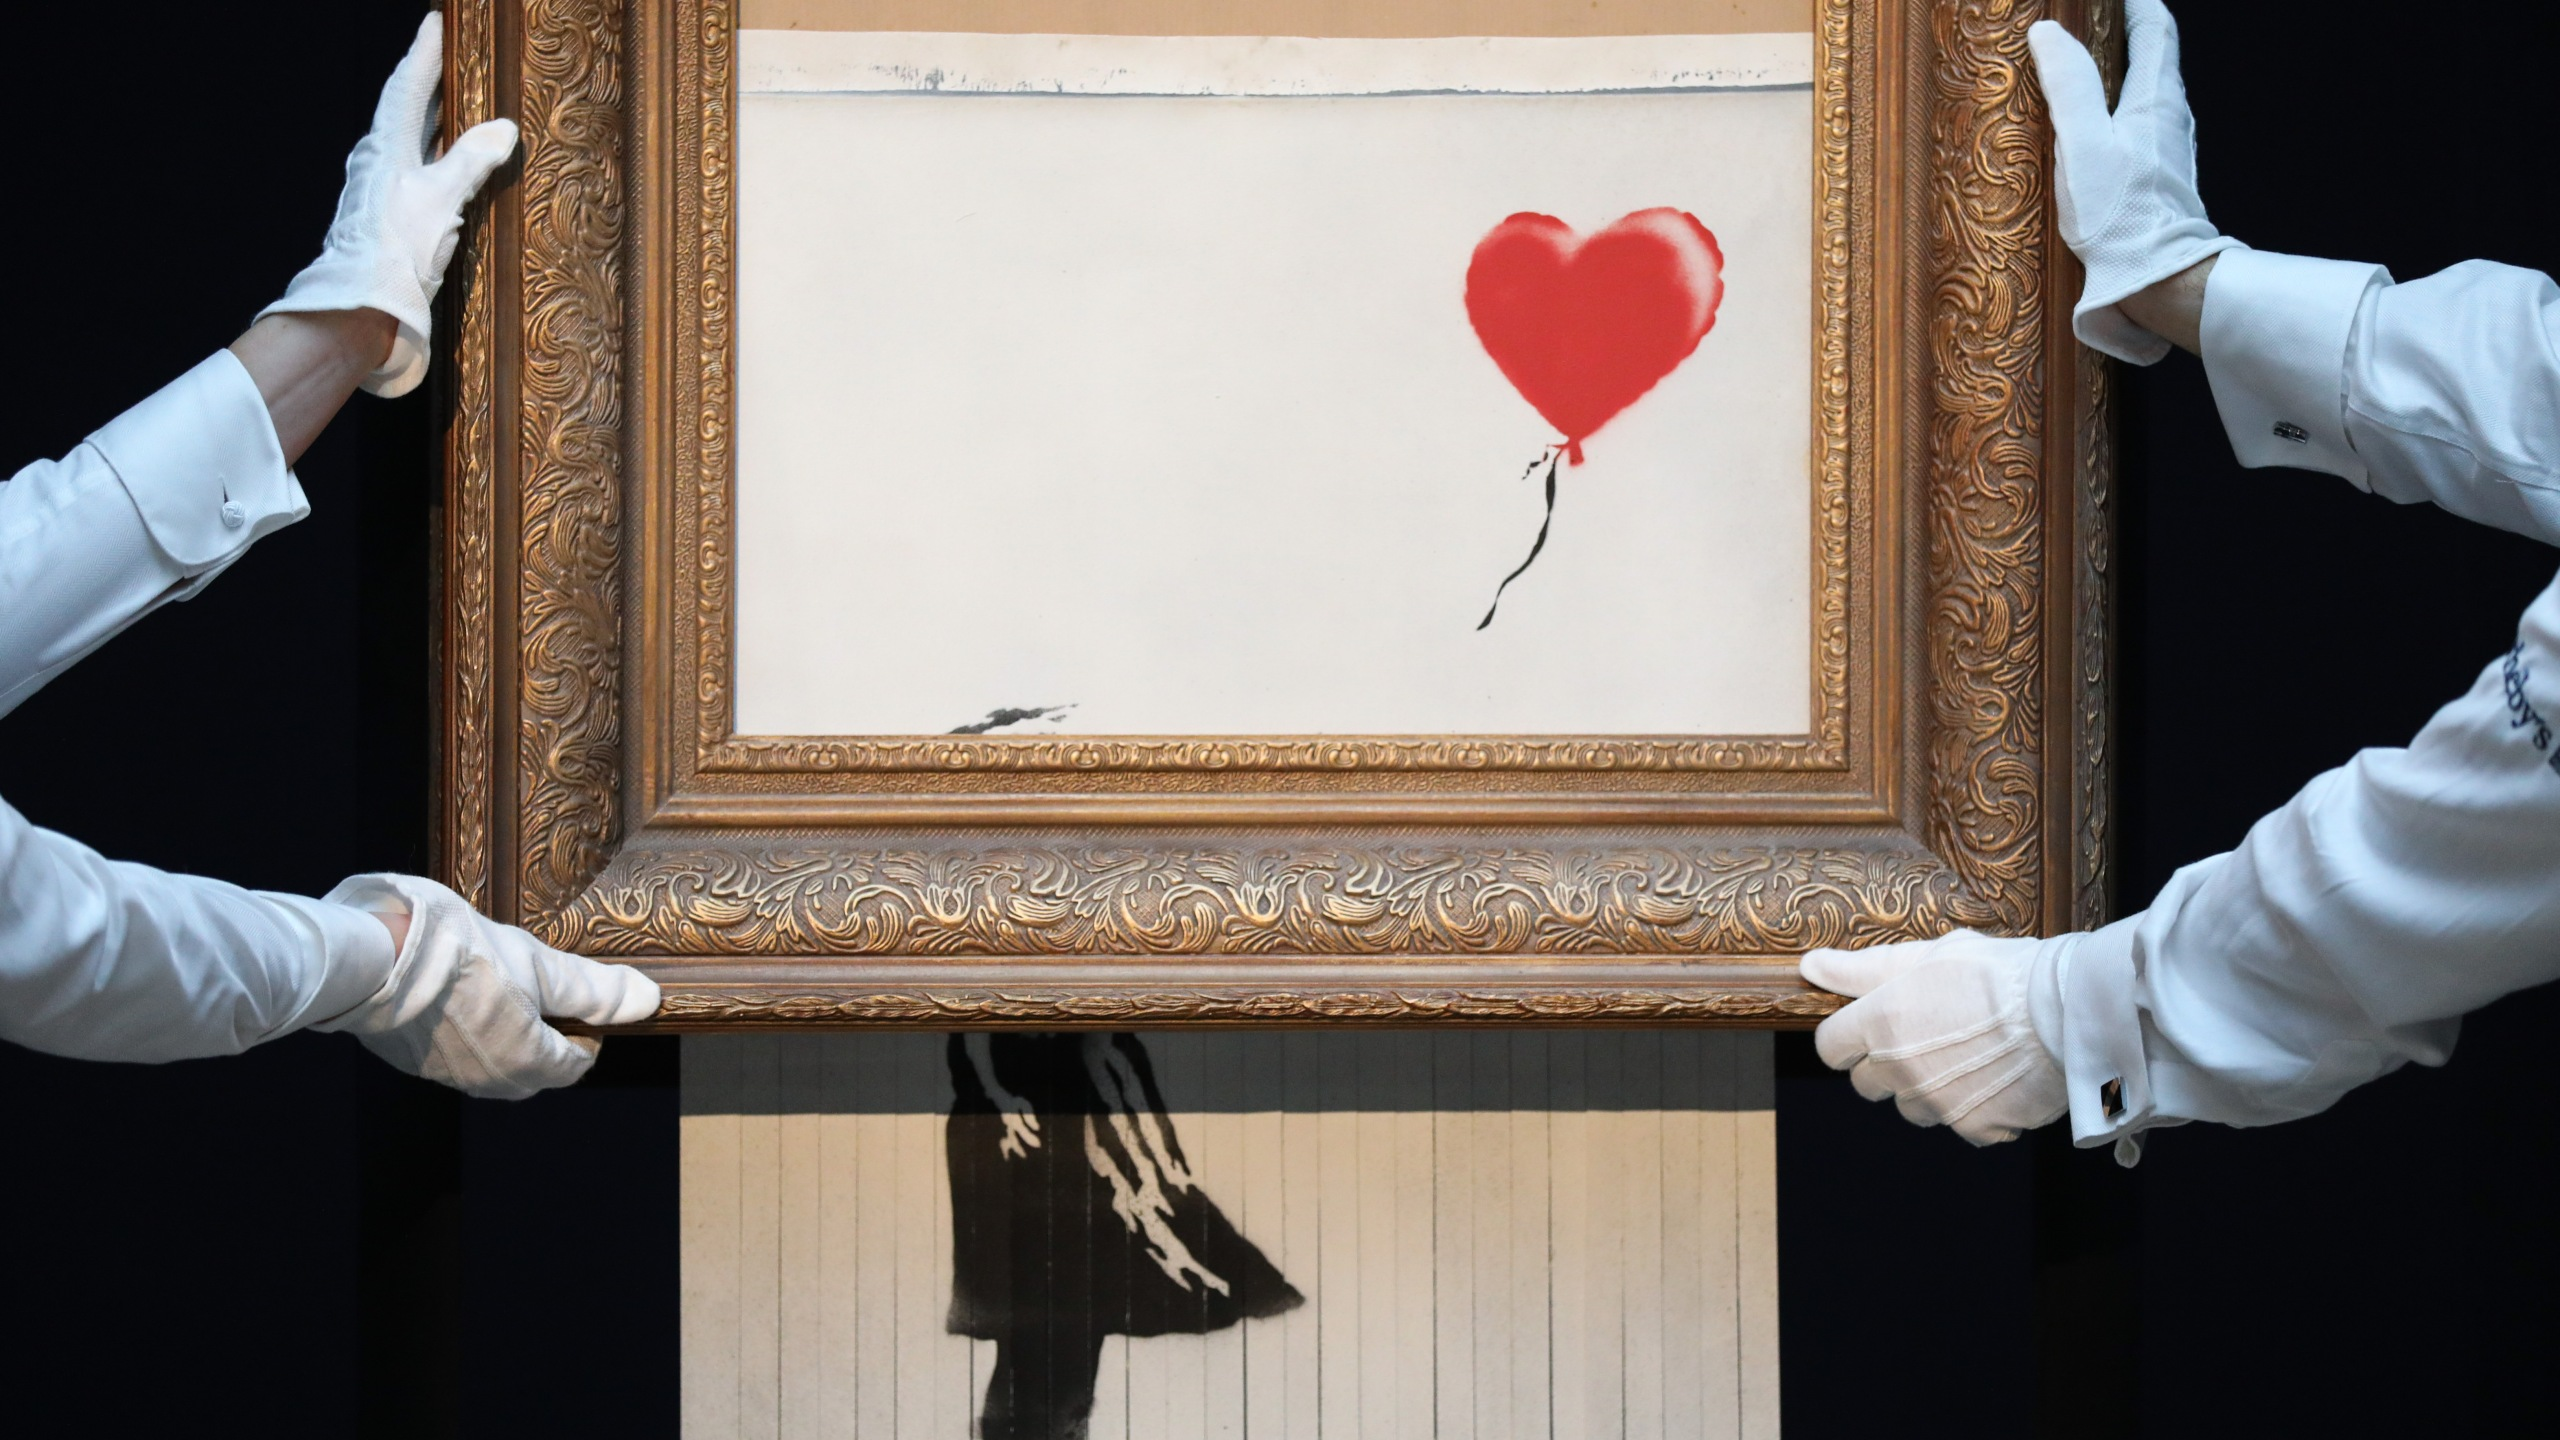 "Sotheby's unveils Banksy's newly-titled ""Love is in the Bin"" at Sotheby's in London on Oct. 12, 2018. Originally titled ""Girl with Balloon,"" the canvas passed through a hidden shredder seconds after the hammer fell at Sotheby's London Contemporary Art Evening Sale on Oct. 5, 2018, making it the first artwork in history to have been created live during an auction. (Credit: Tristan Fewings / Getty Images for Sotheby's)"